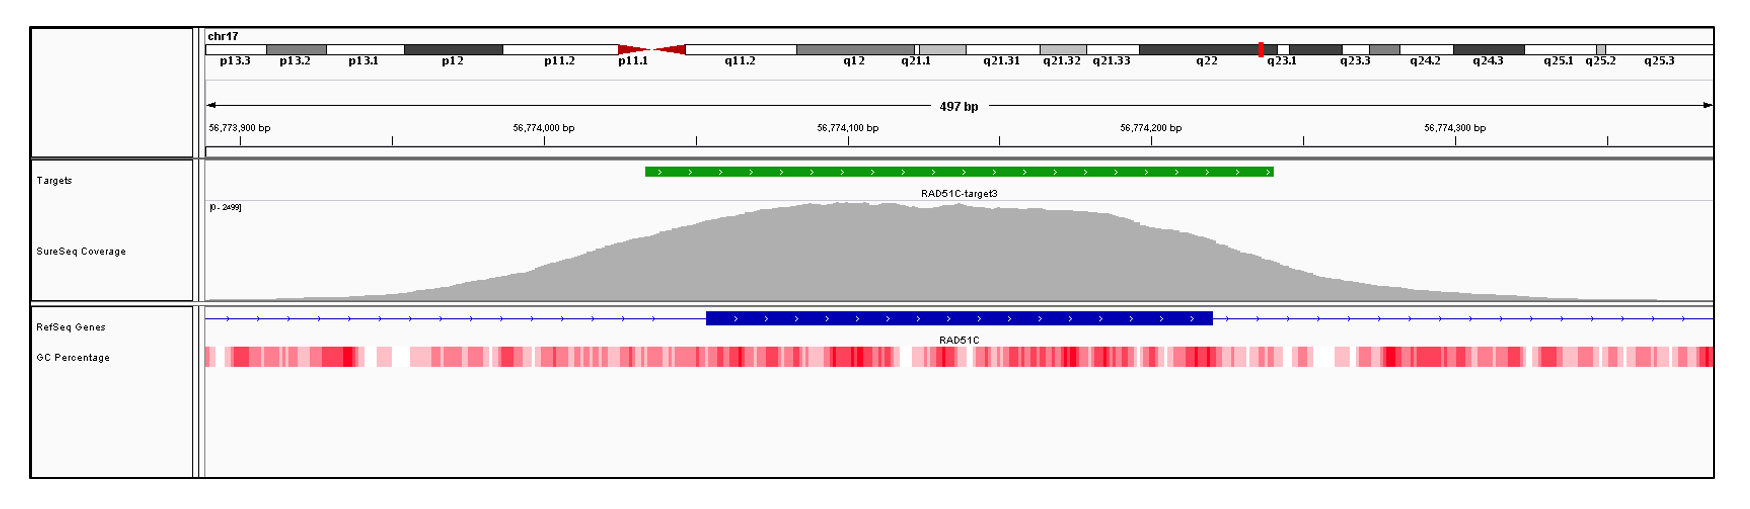 RAD51C Exon 3 (hg19 chr17:56774054-56774220). Depth of coverage per base (grey). Targeted region (green). Gene coding region as defined by RefSeq (blue). GC percentage (red). Image